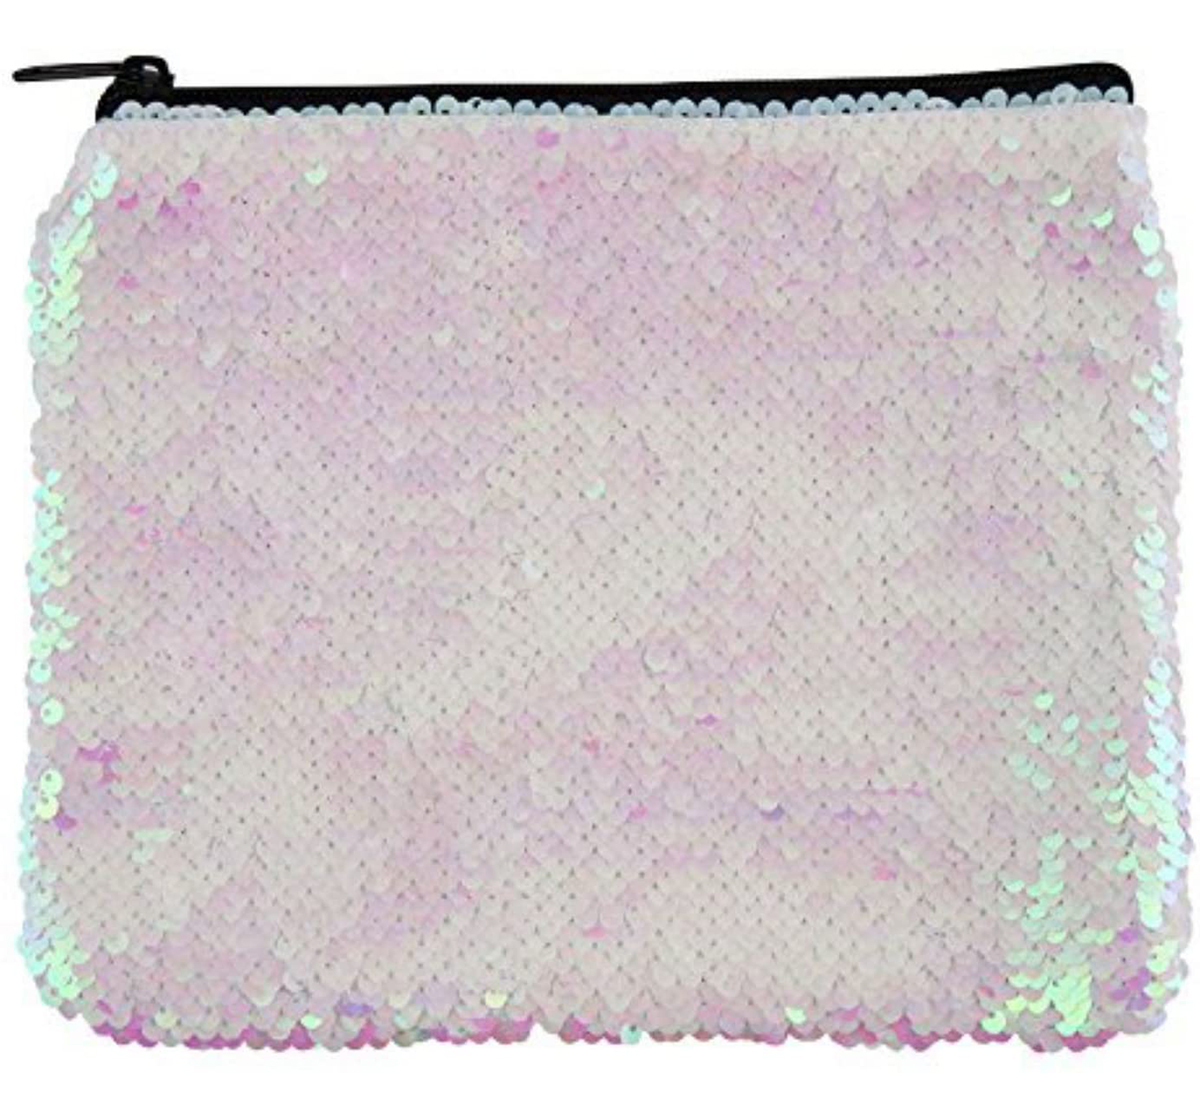 Fashion Angels   Fashion Angels S.Lab Sequin Pouch Pink Iridescent Pencil Pouches & Boxes for Girls age 6Y+